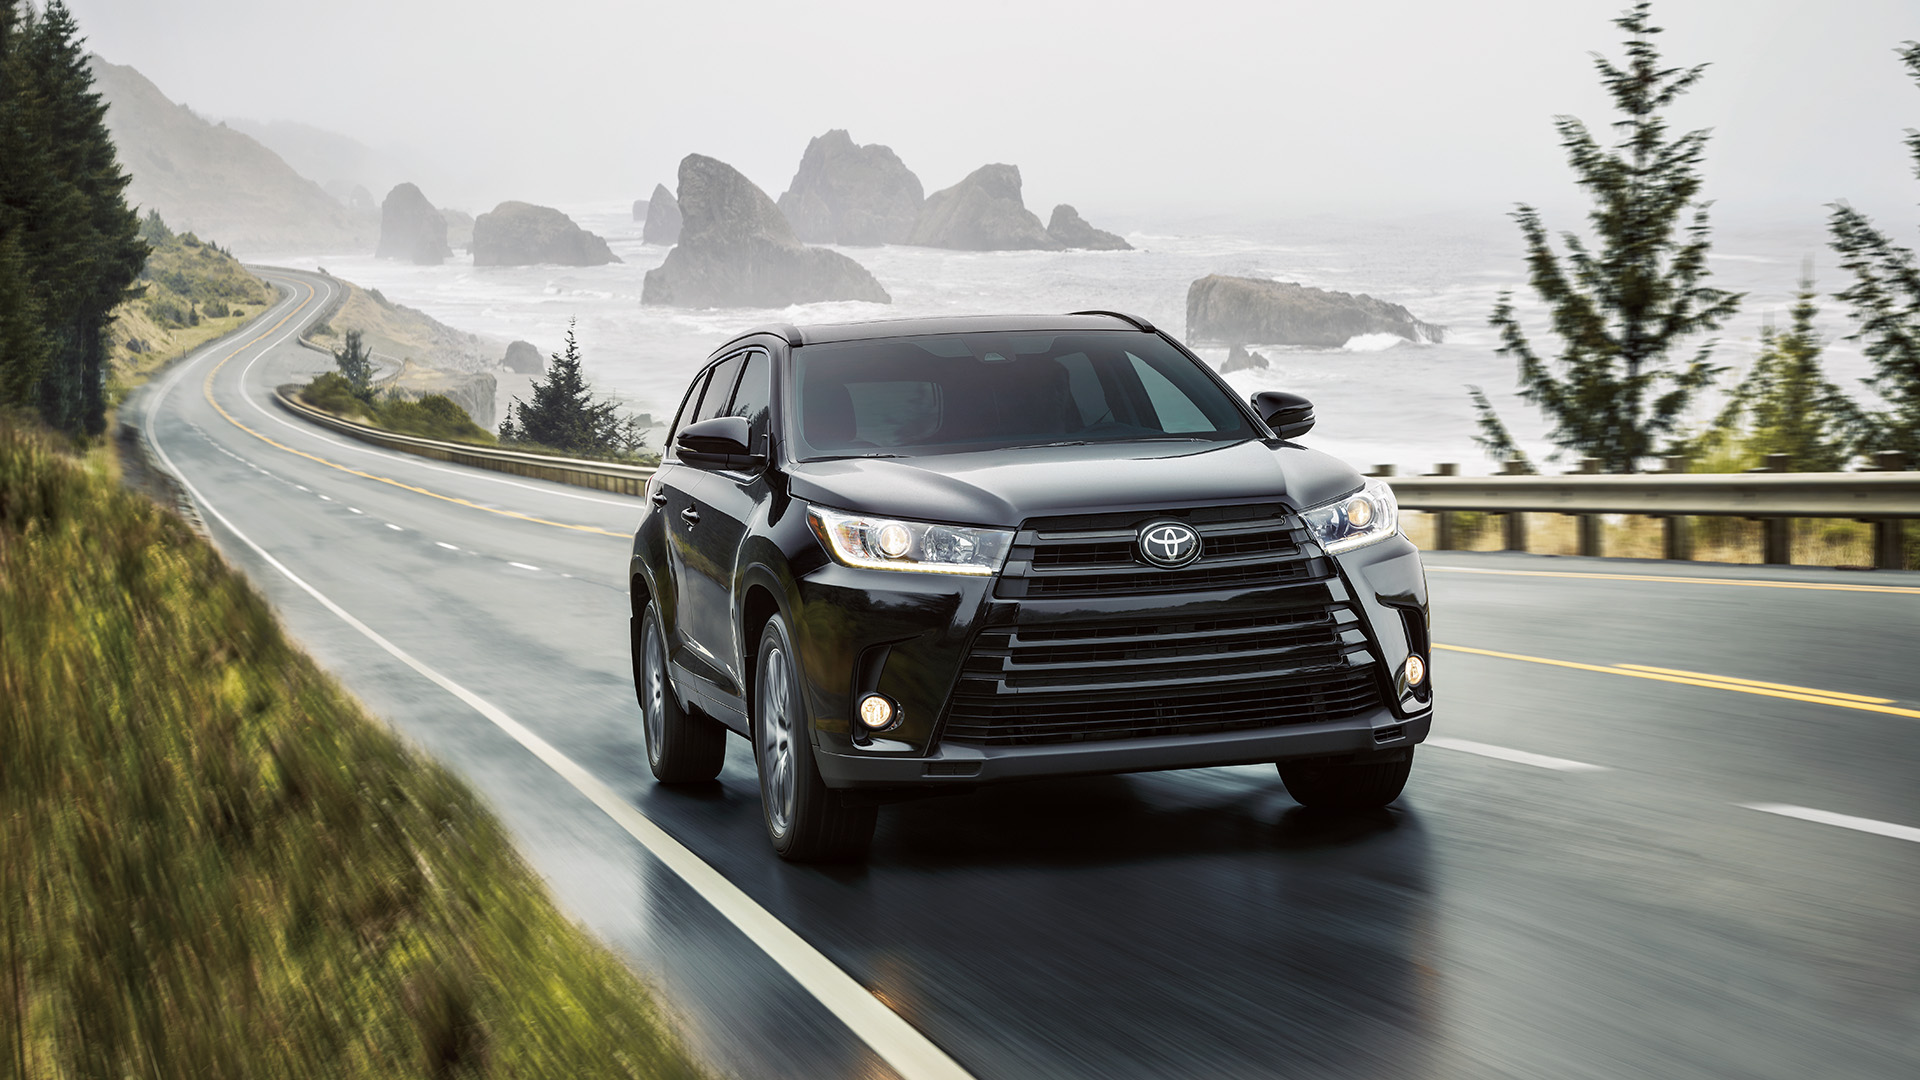 Toyota Highlander Owners Manual: Selecting shift ranges in the s position